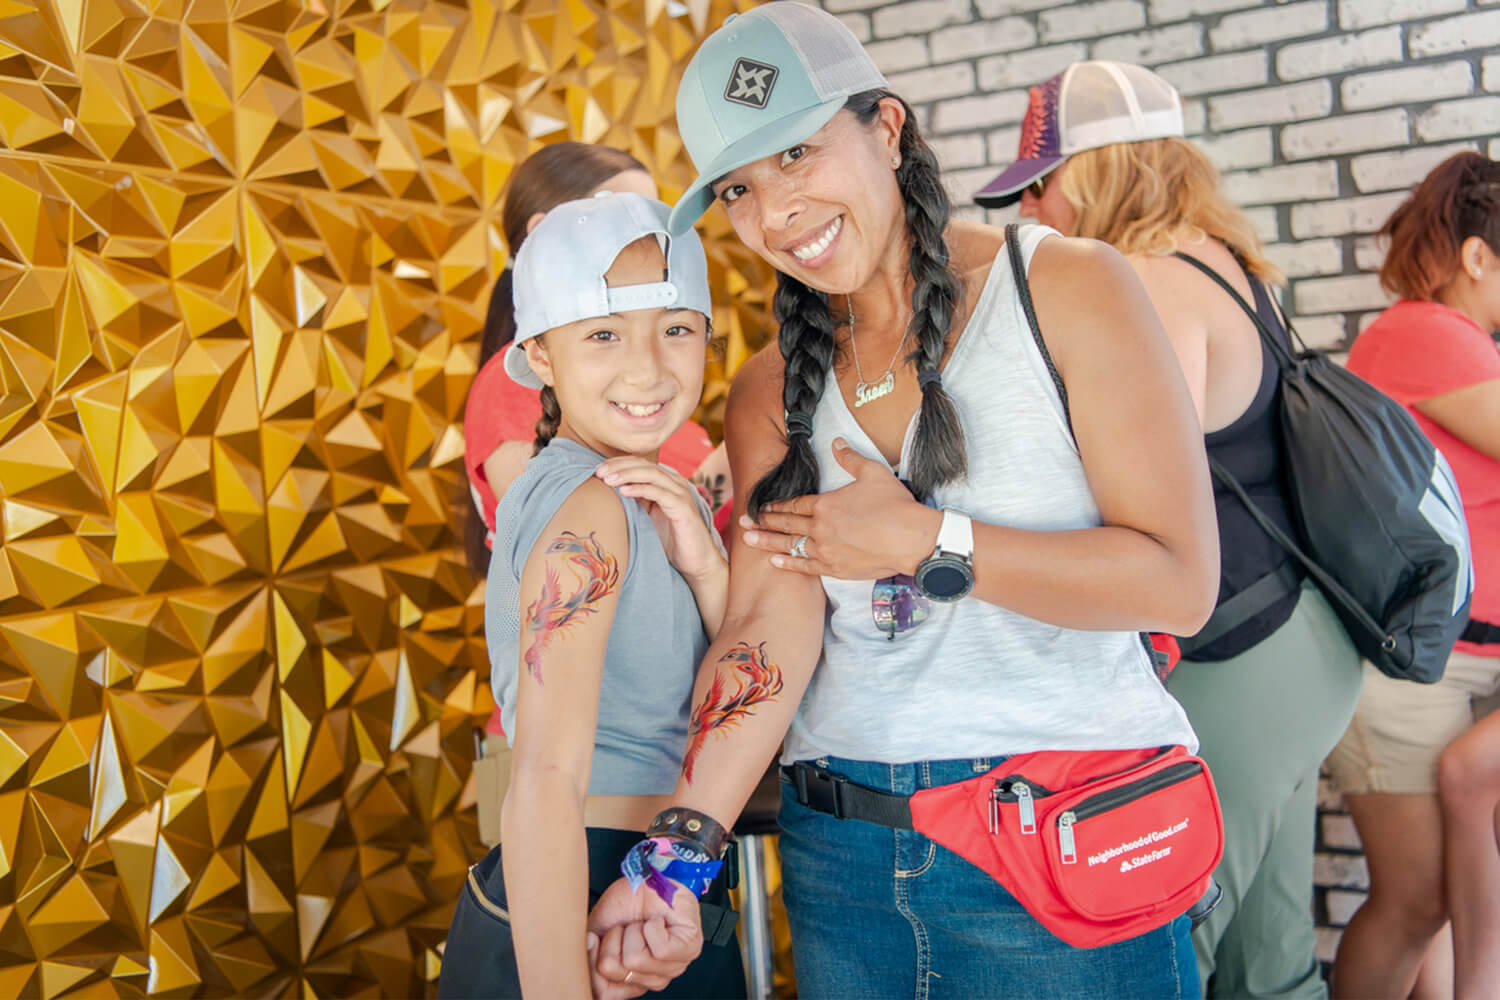 Festivalgoers of all ages visited the Neighborhood of Good, a marketing activation for State Farm developed by The Marketing Arm.